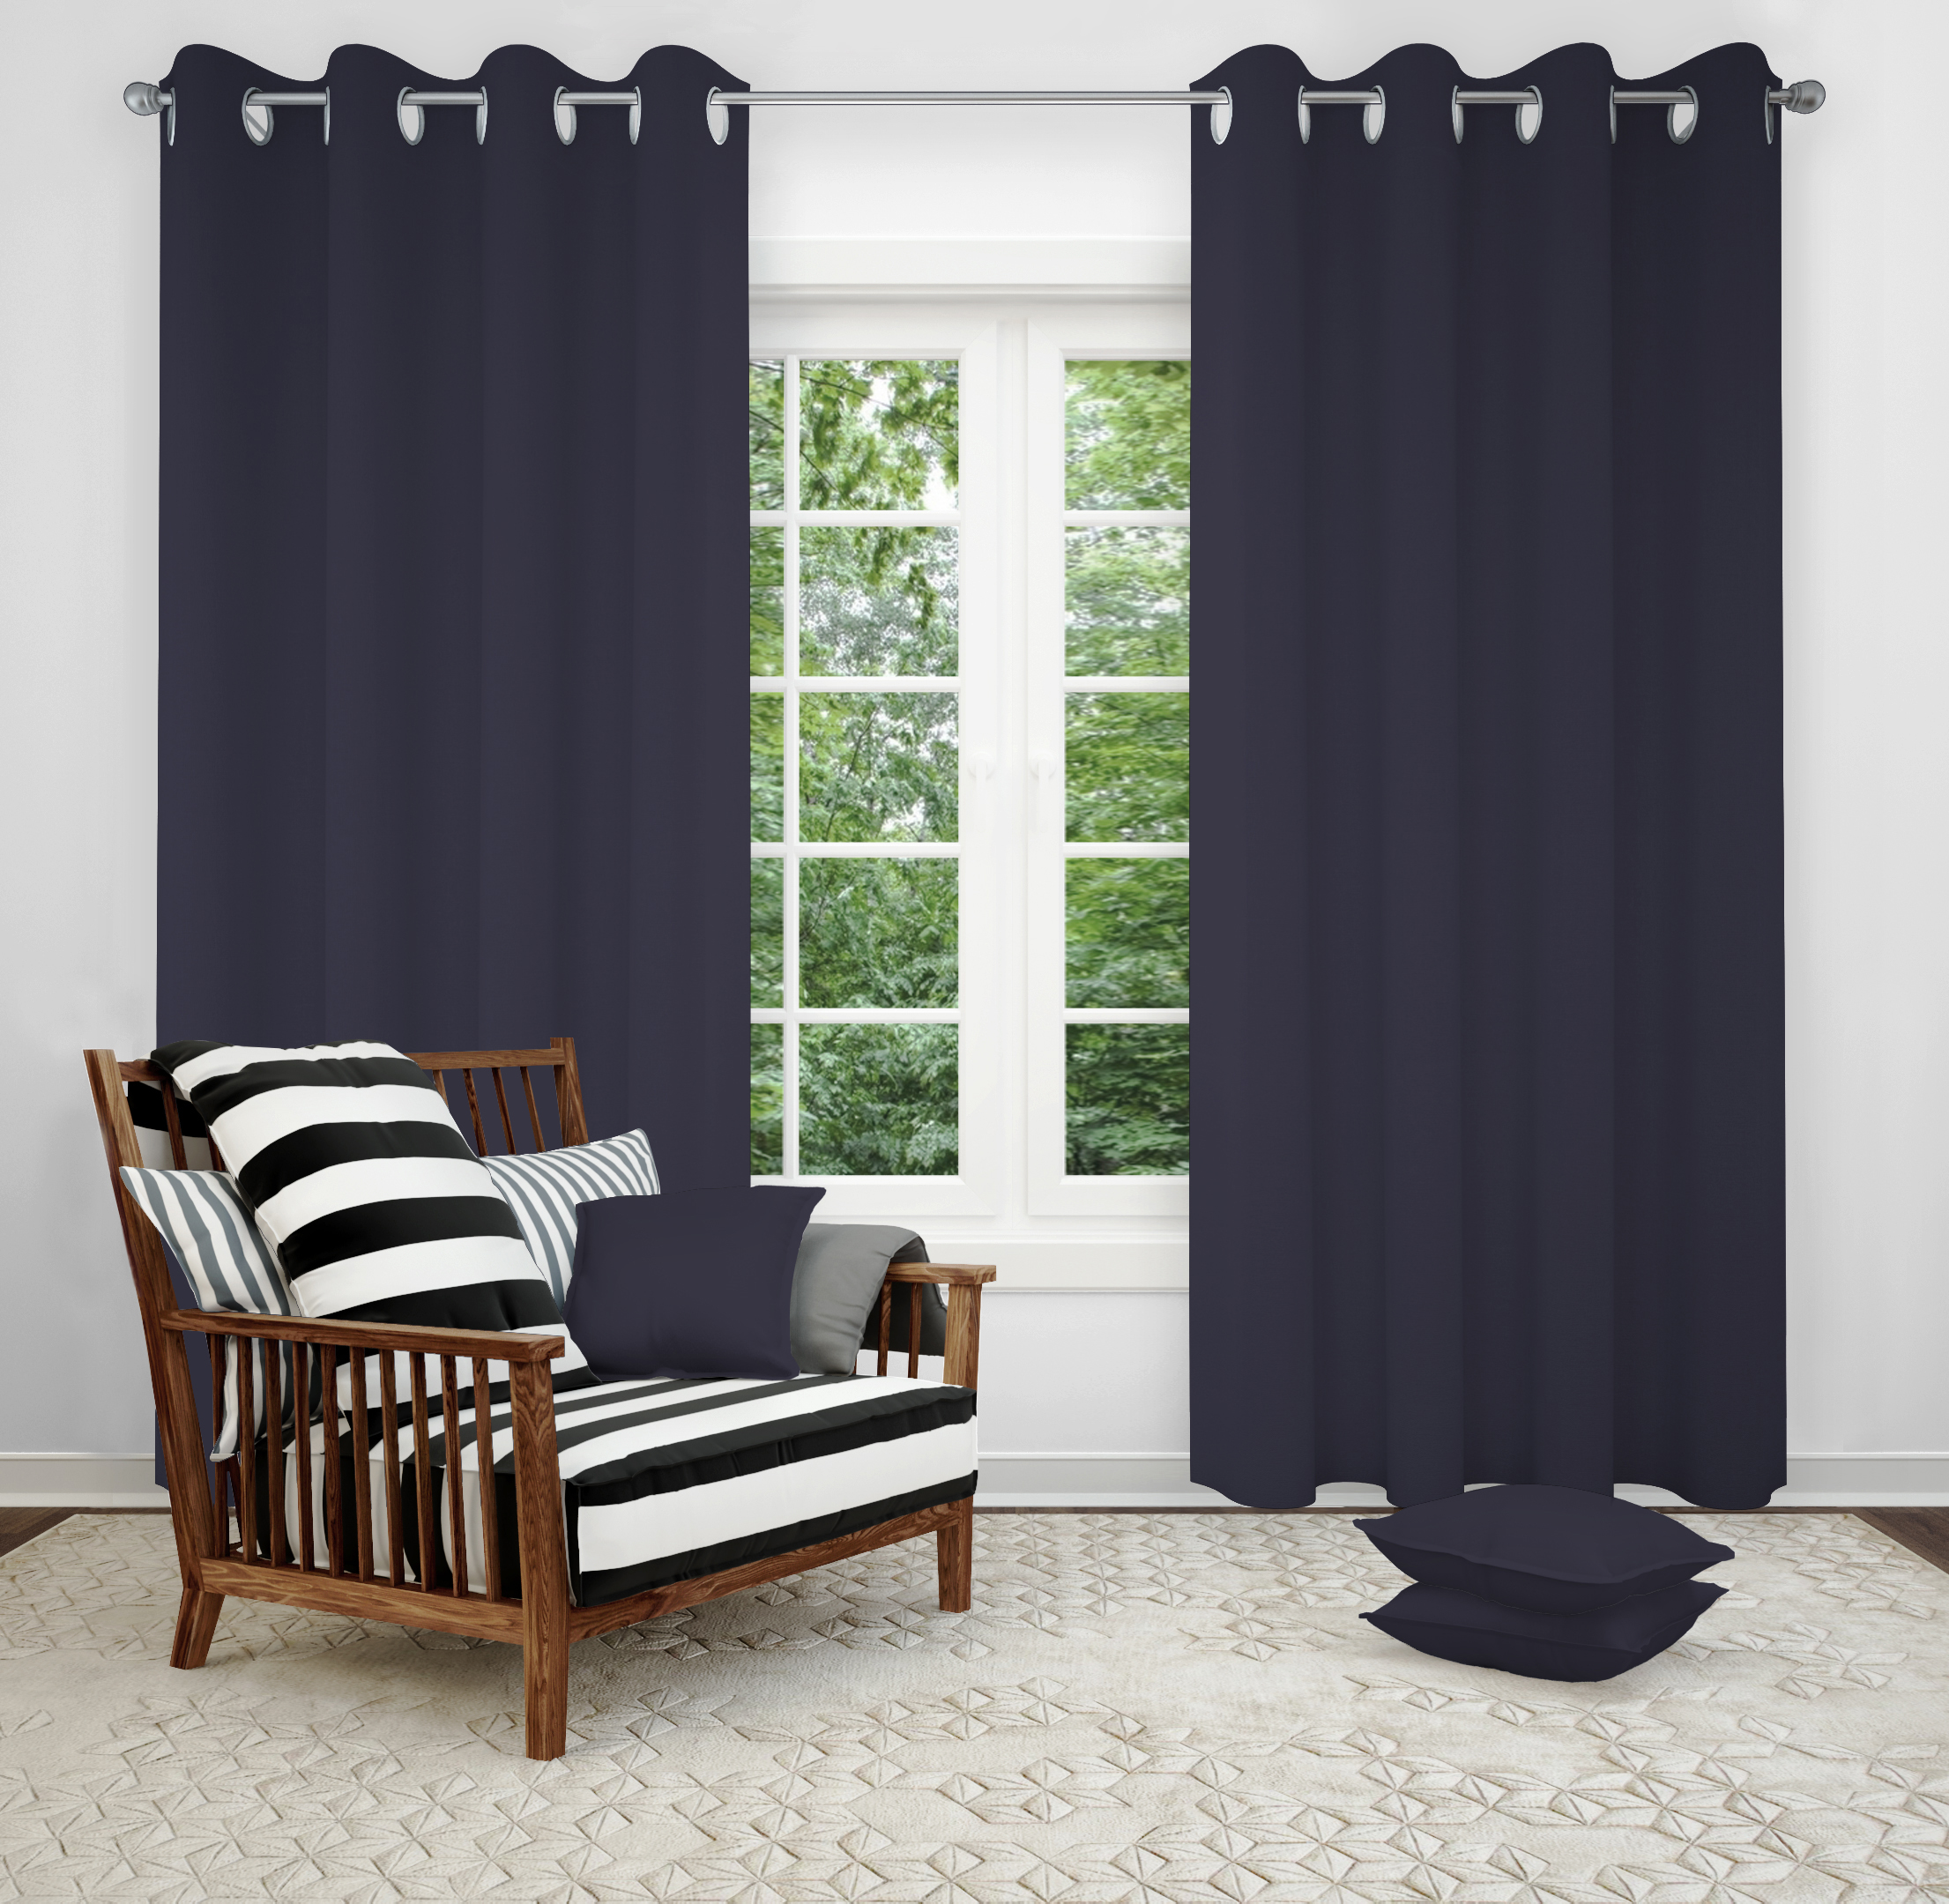 Details about Window Eyelet Curtains Thermal Blackout Ring Top Curtain 3  Layers Material 2 PCS